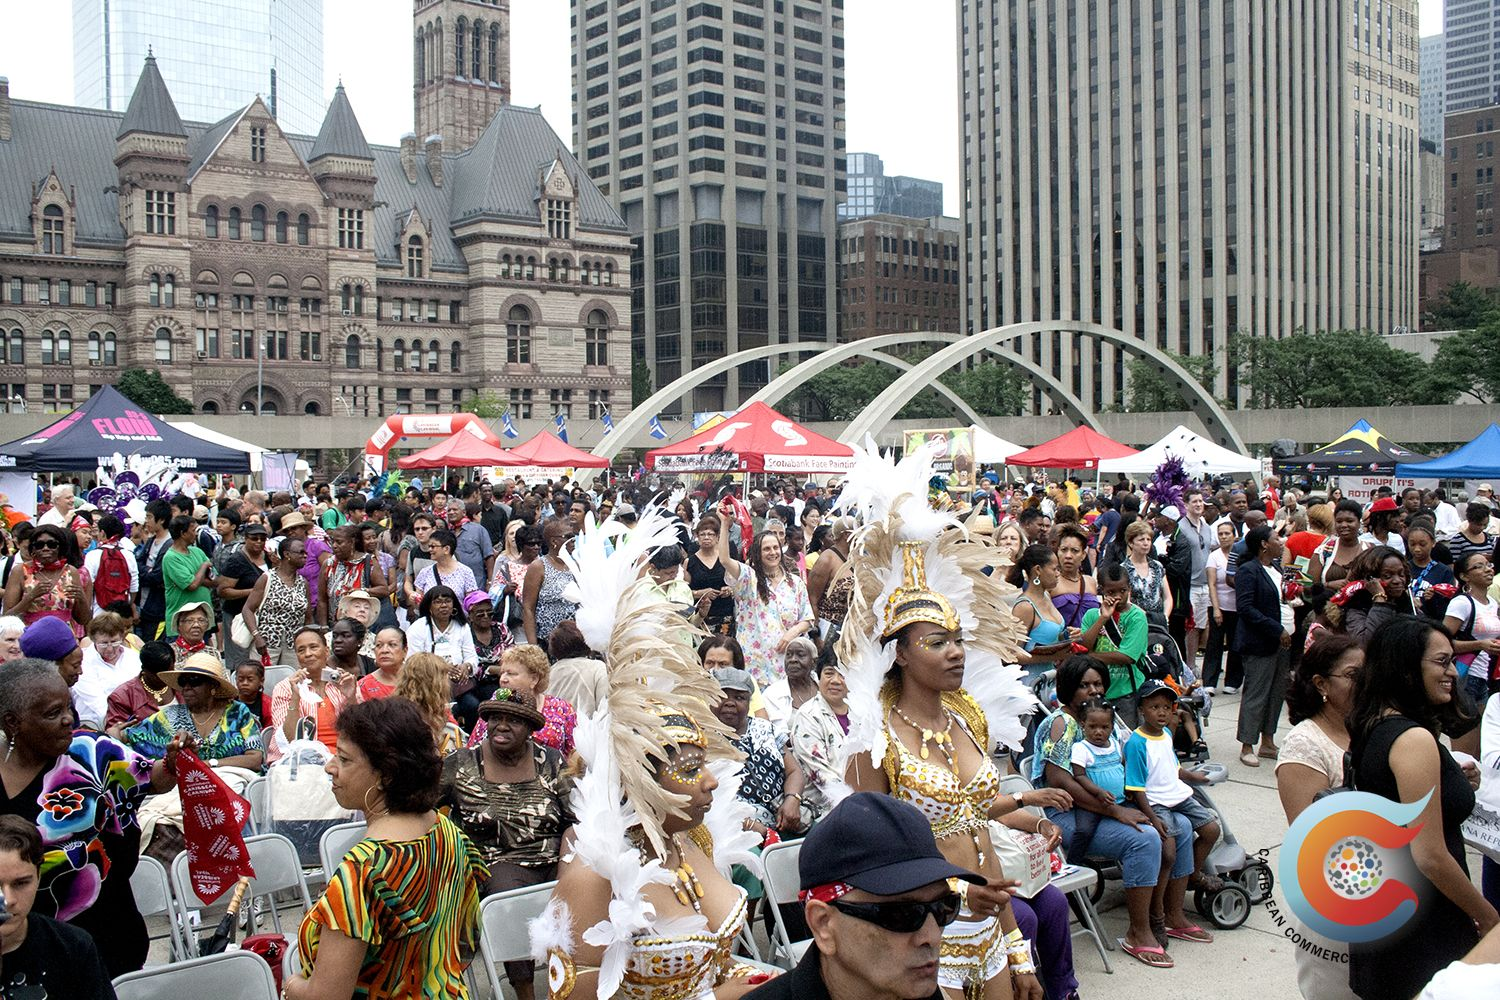 Toronto turned out for the launch of the Scotiabank